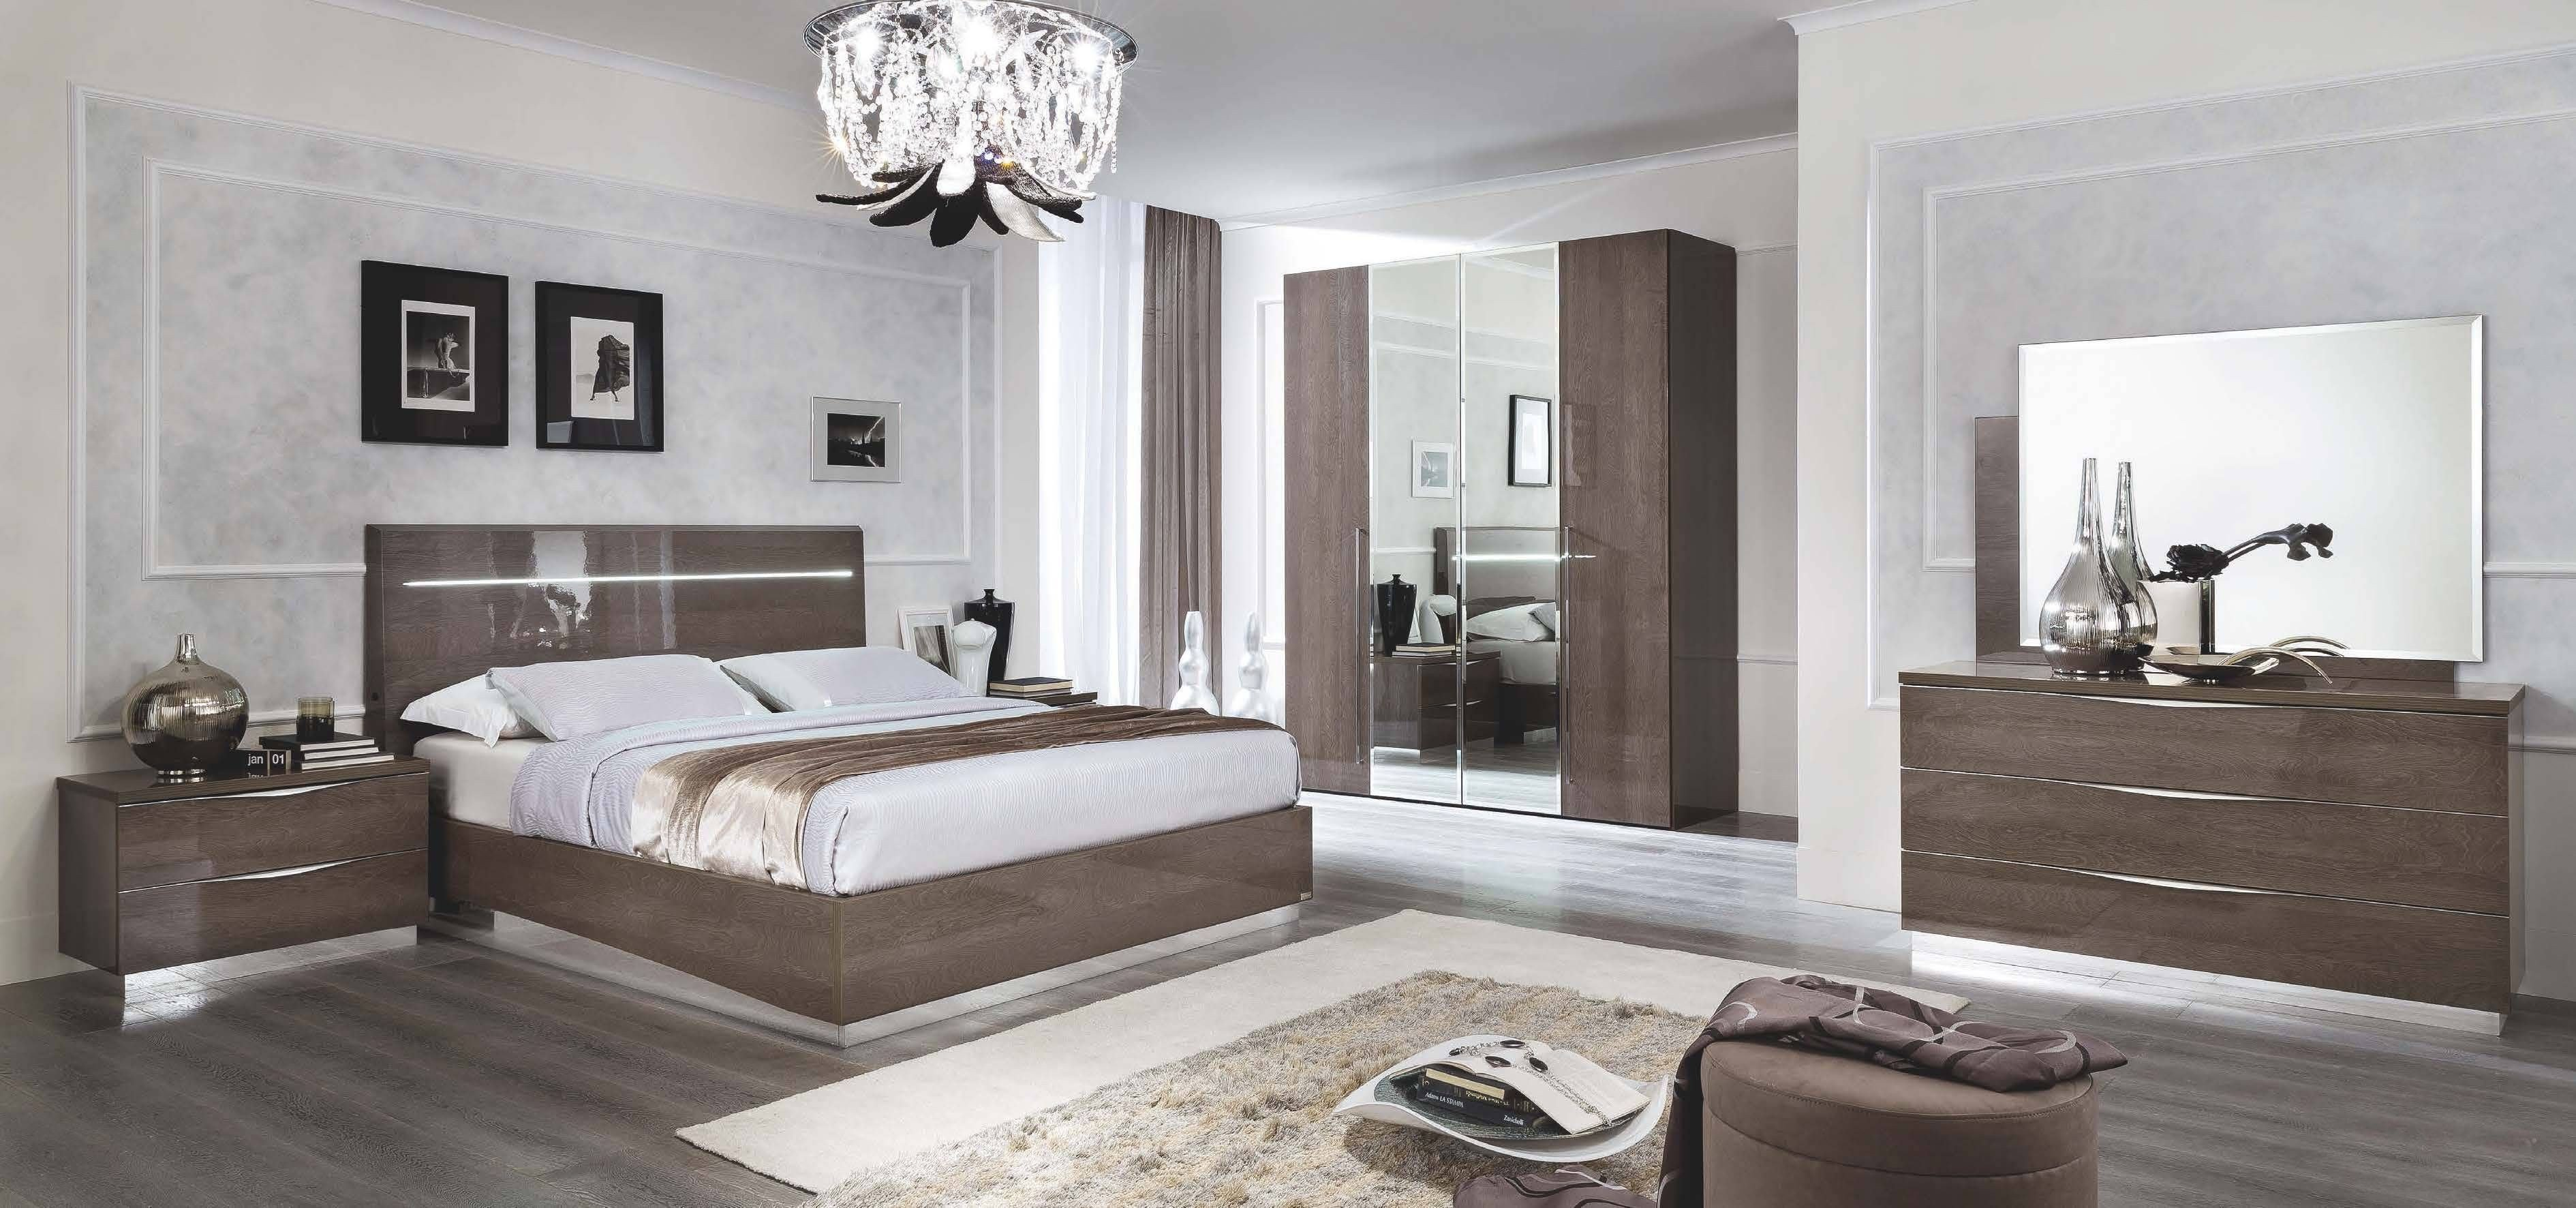 White Lacquer Bedroom Furniture Best Of Made In Italy Quality High End Bedroom Sets